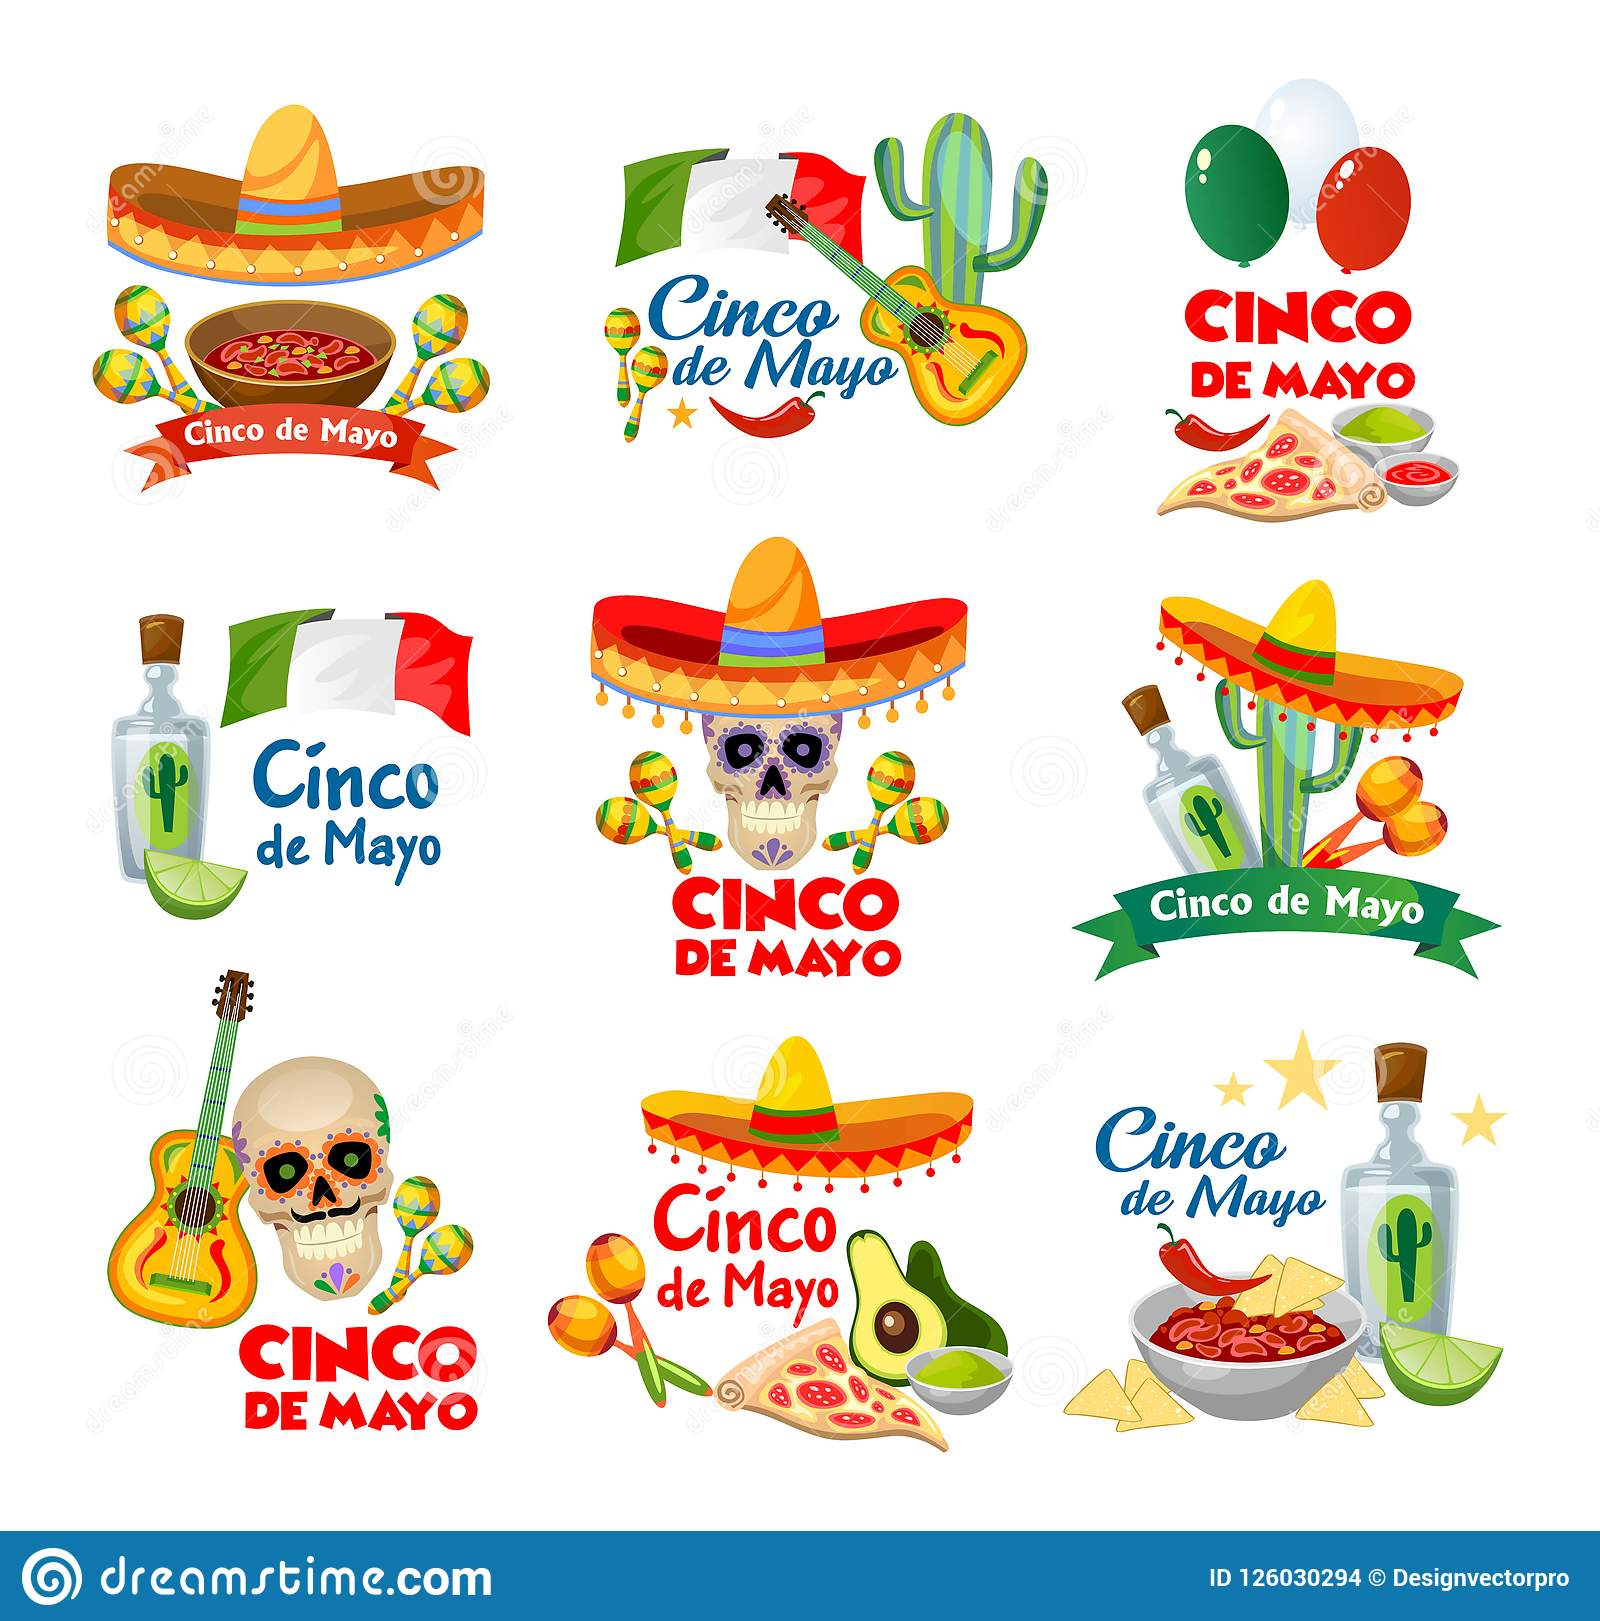 Cinco De Mayo Labels With Traditional Mexican Food And Decorations.